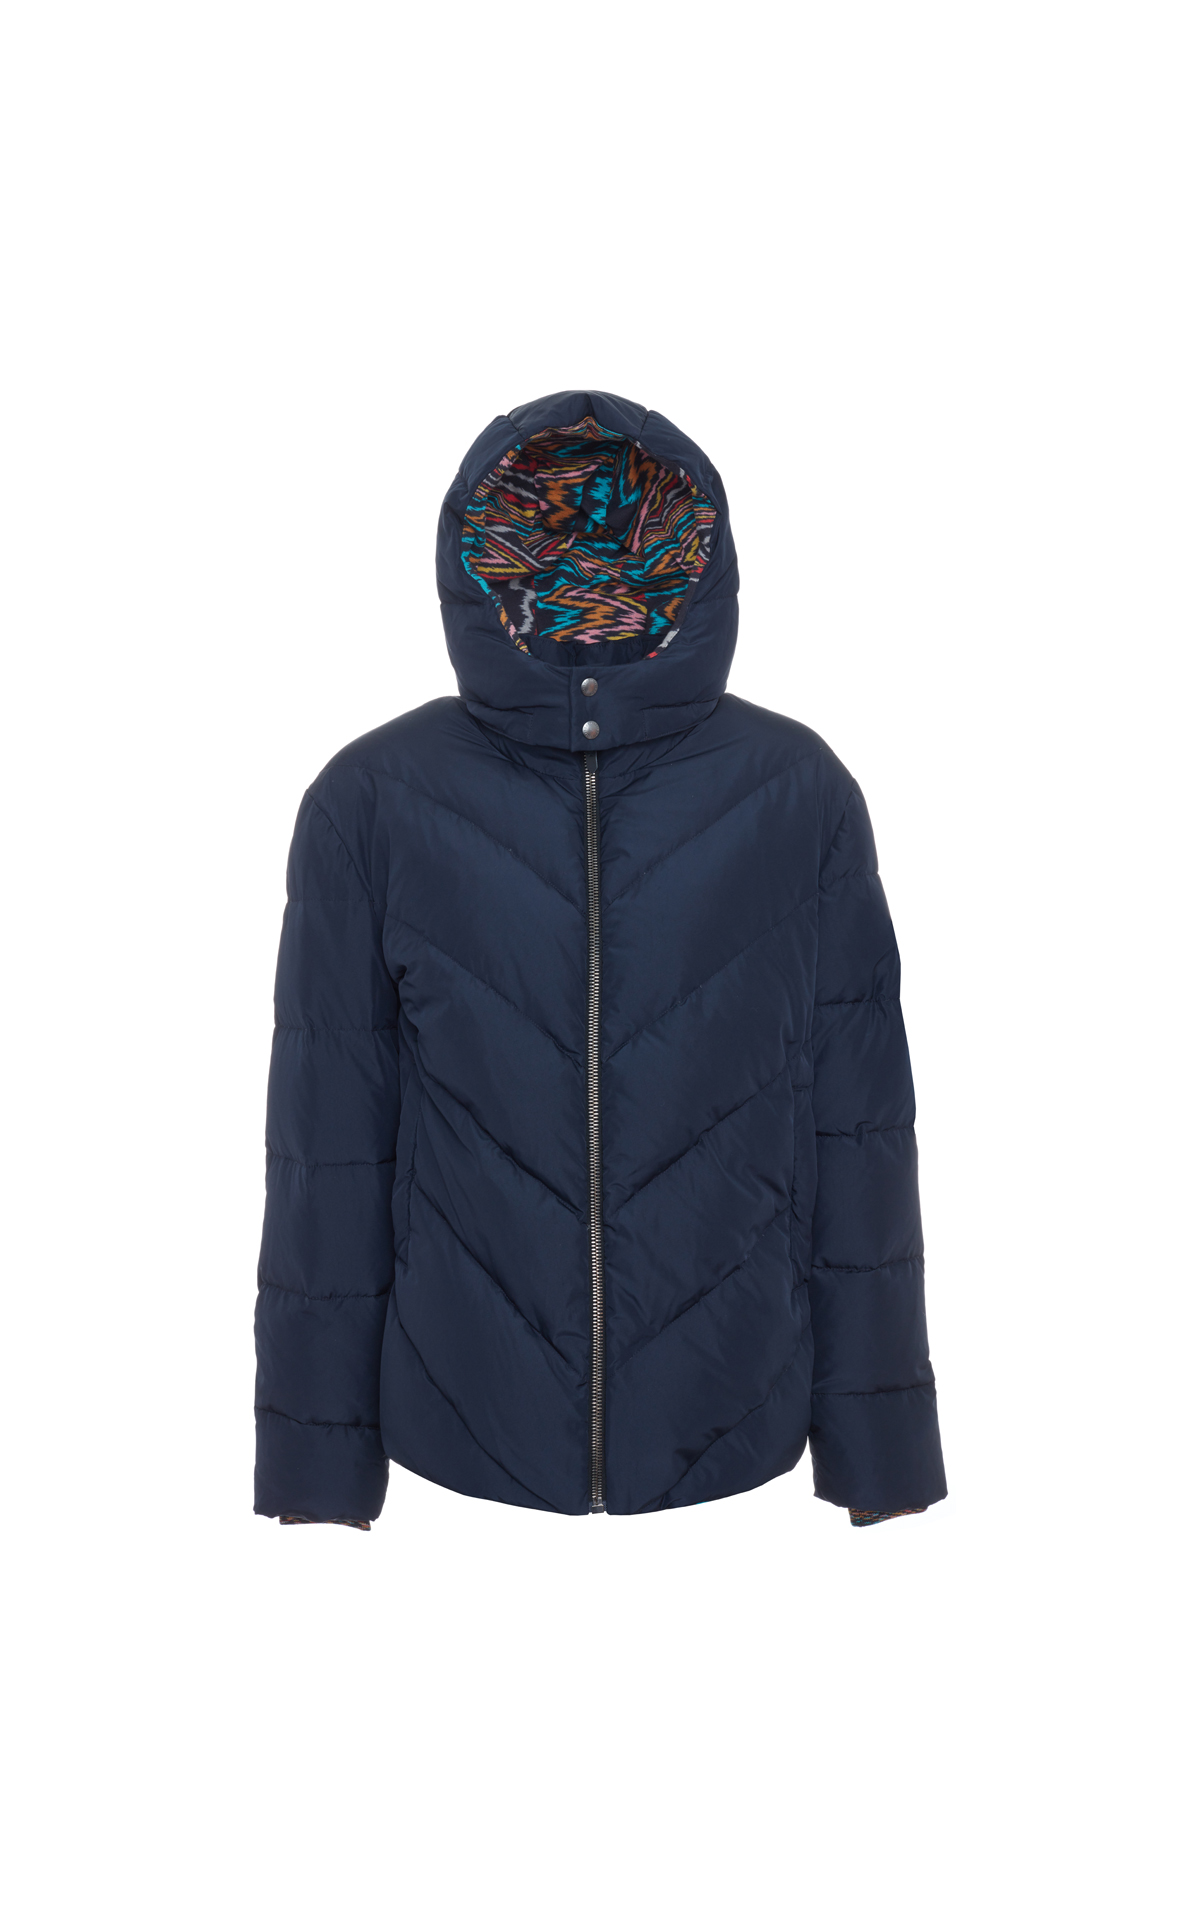 Missoni Down jacket blue from Bicester Village